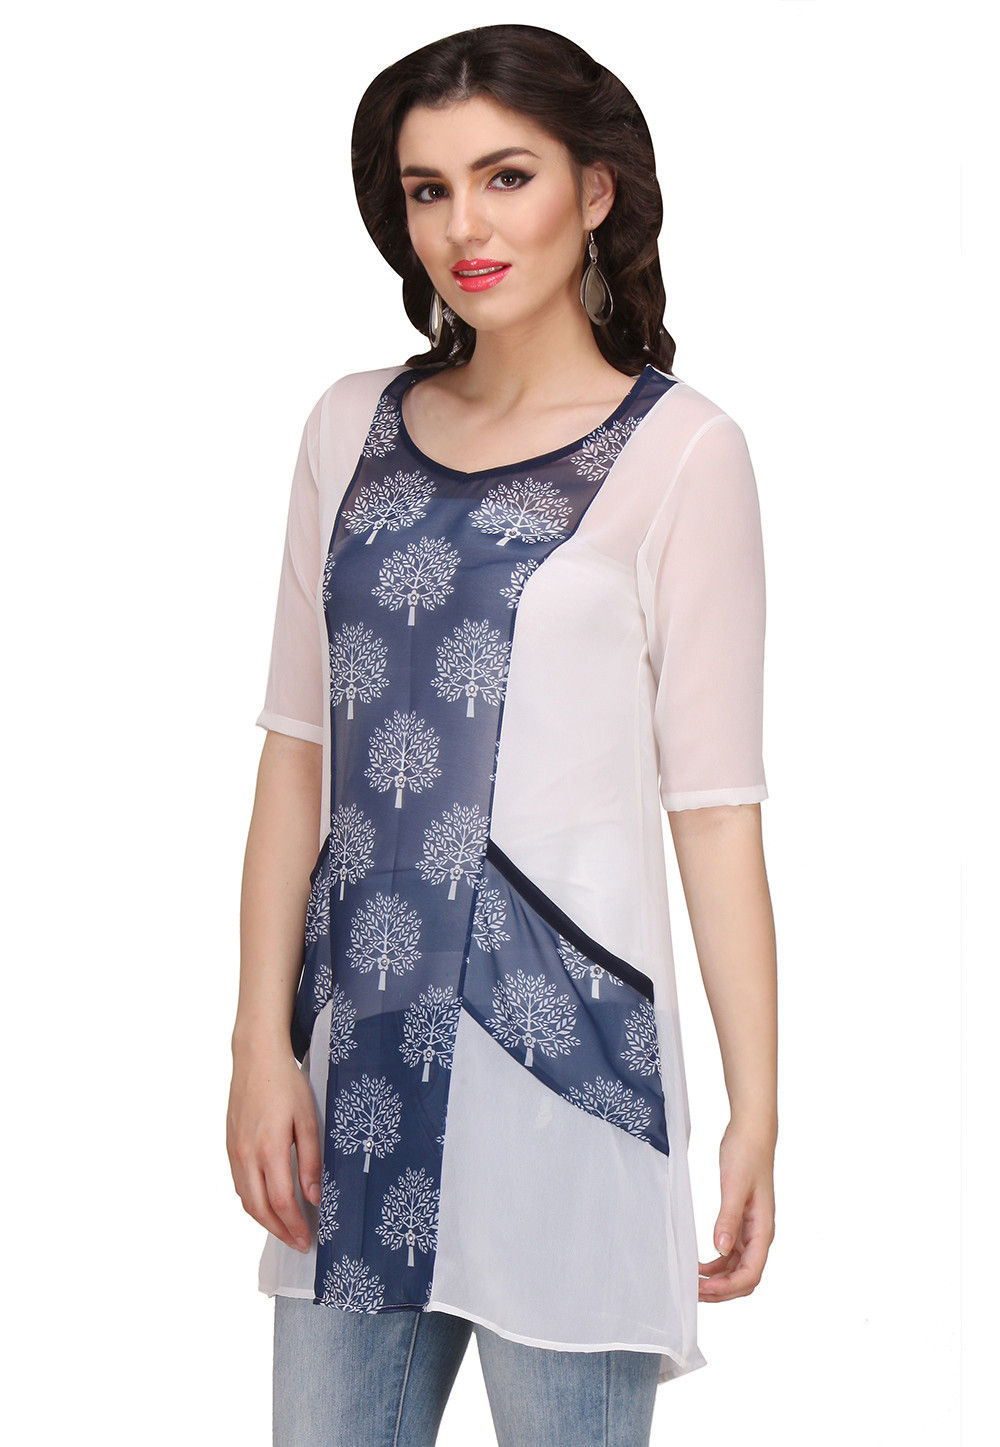 Printed Georgette Tunic in Blue and White